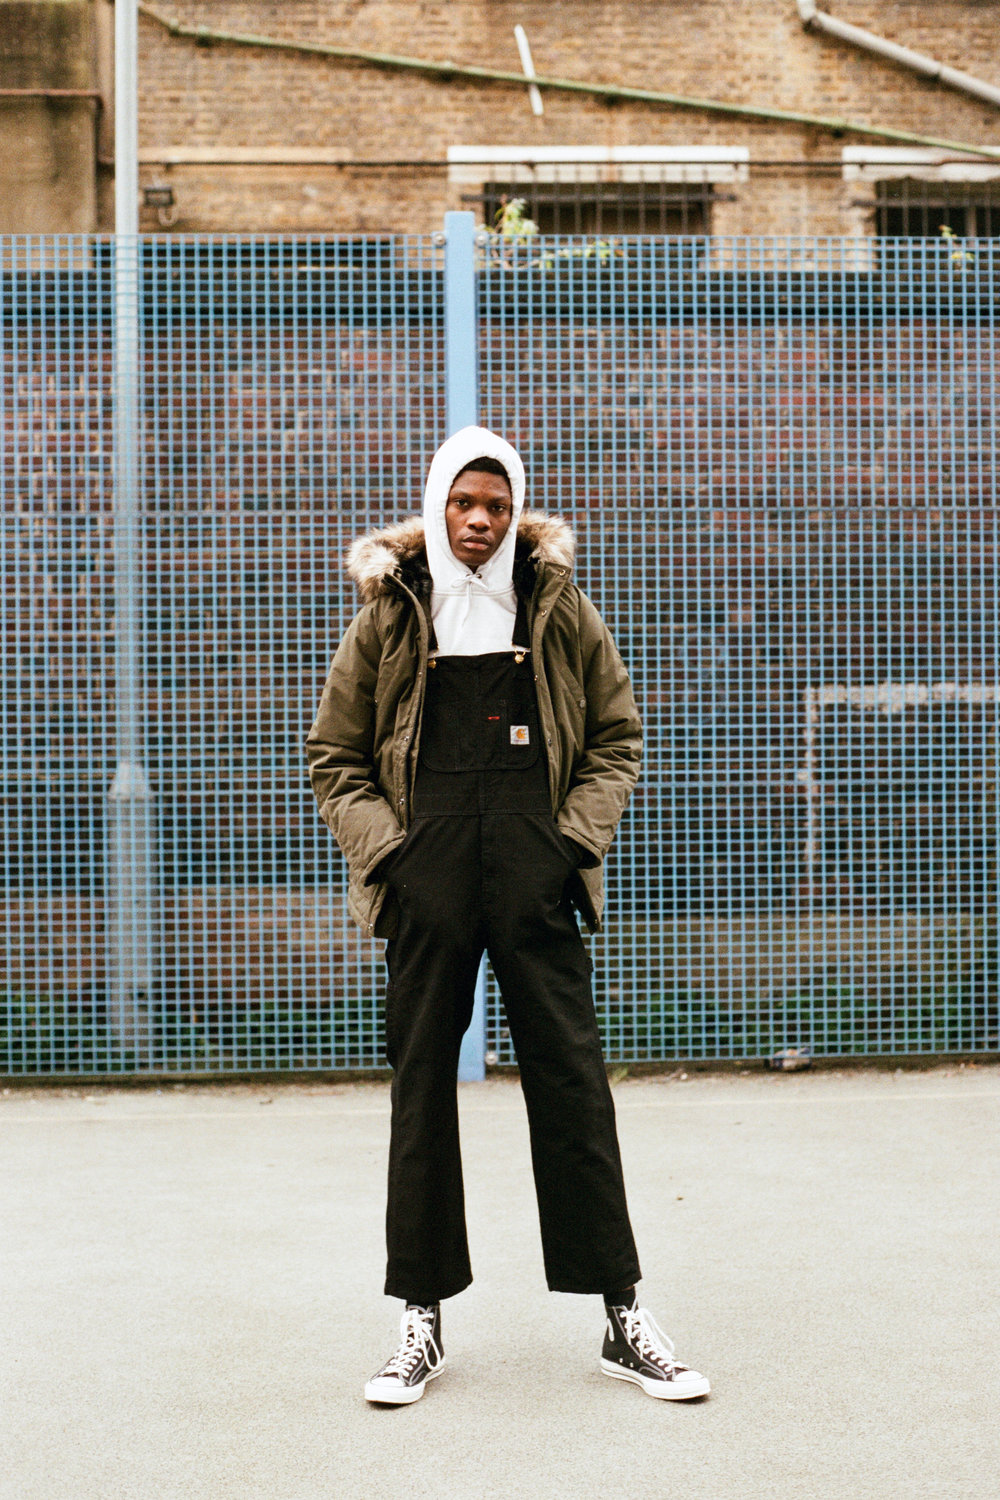 Carhartt AW17, Global